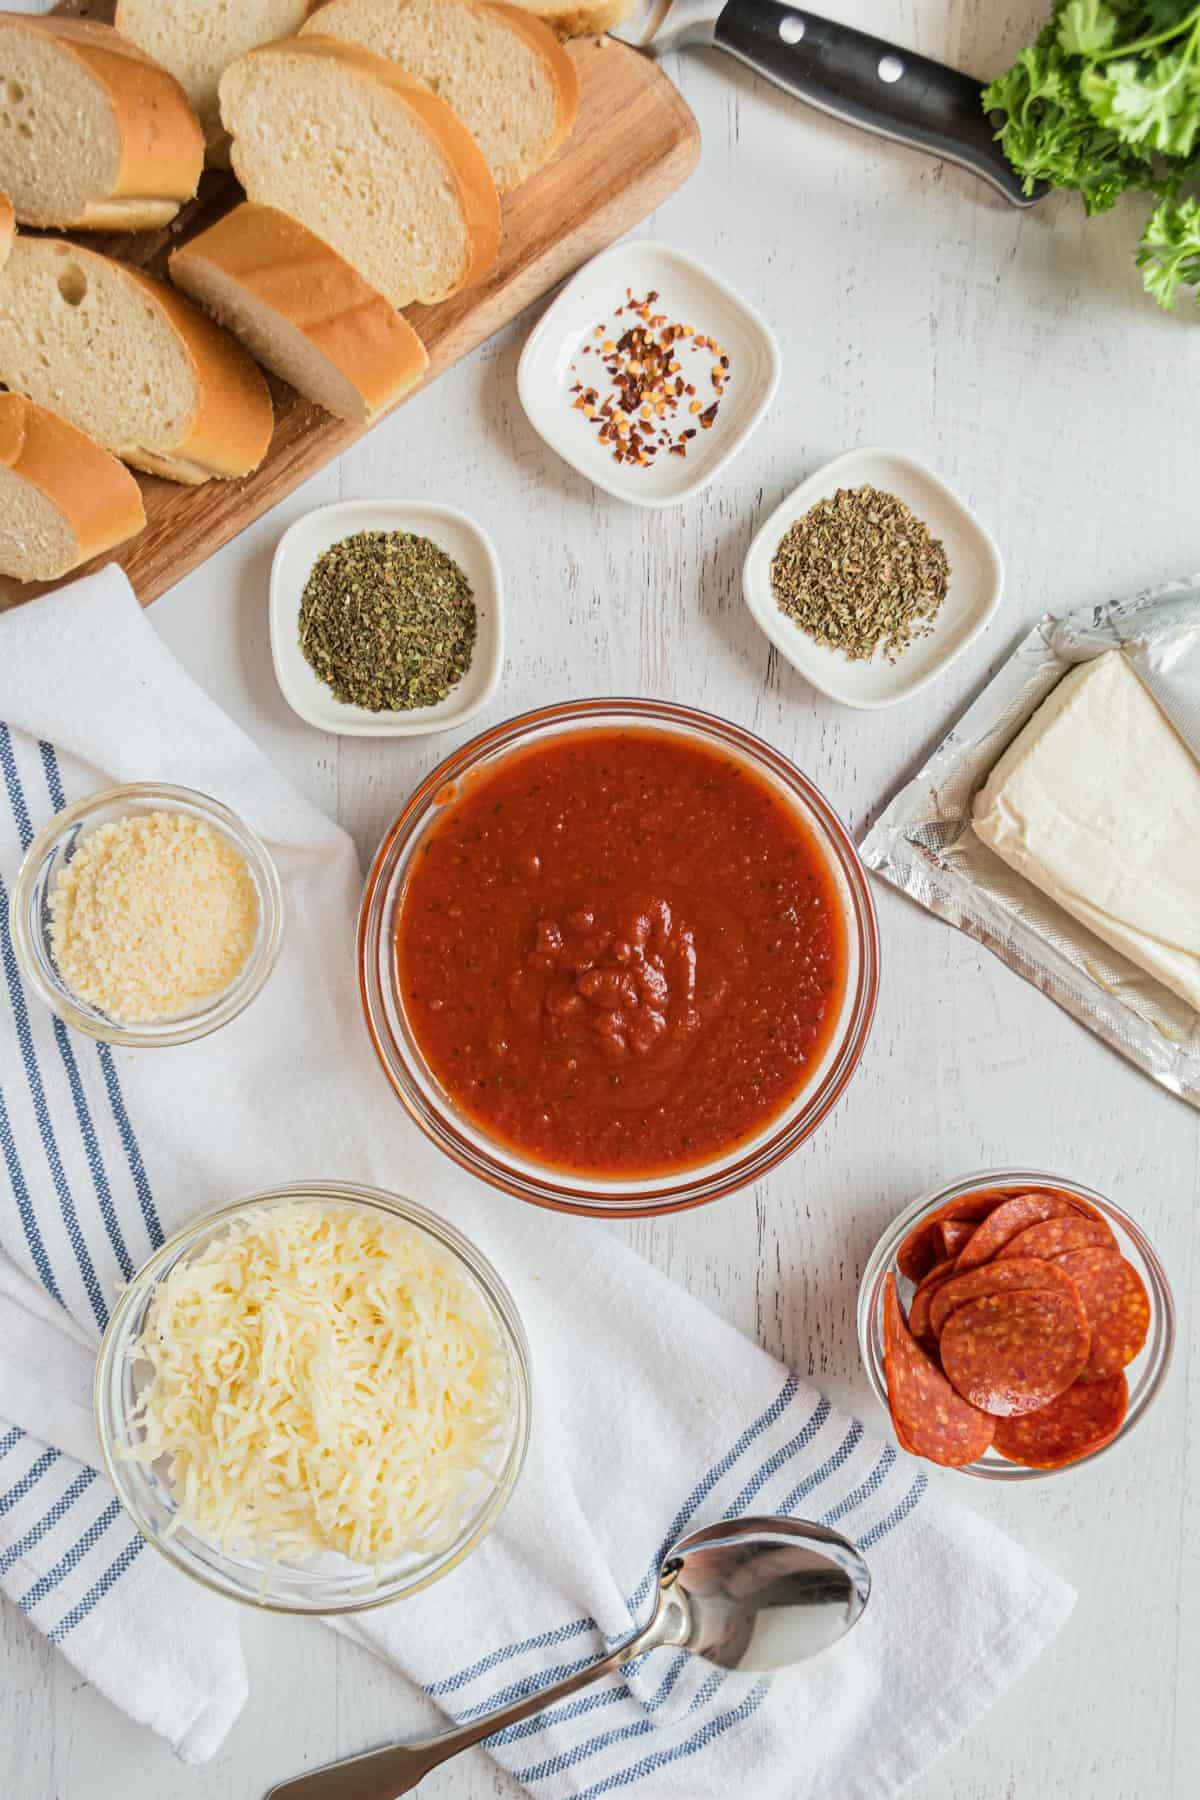 Ingredients needed for pepperoni pizza dip, including cream cheese, pizza sauce, pepperoni, and cheese.